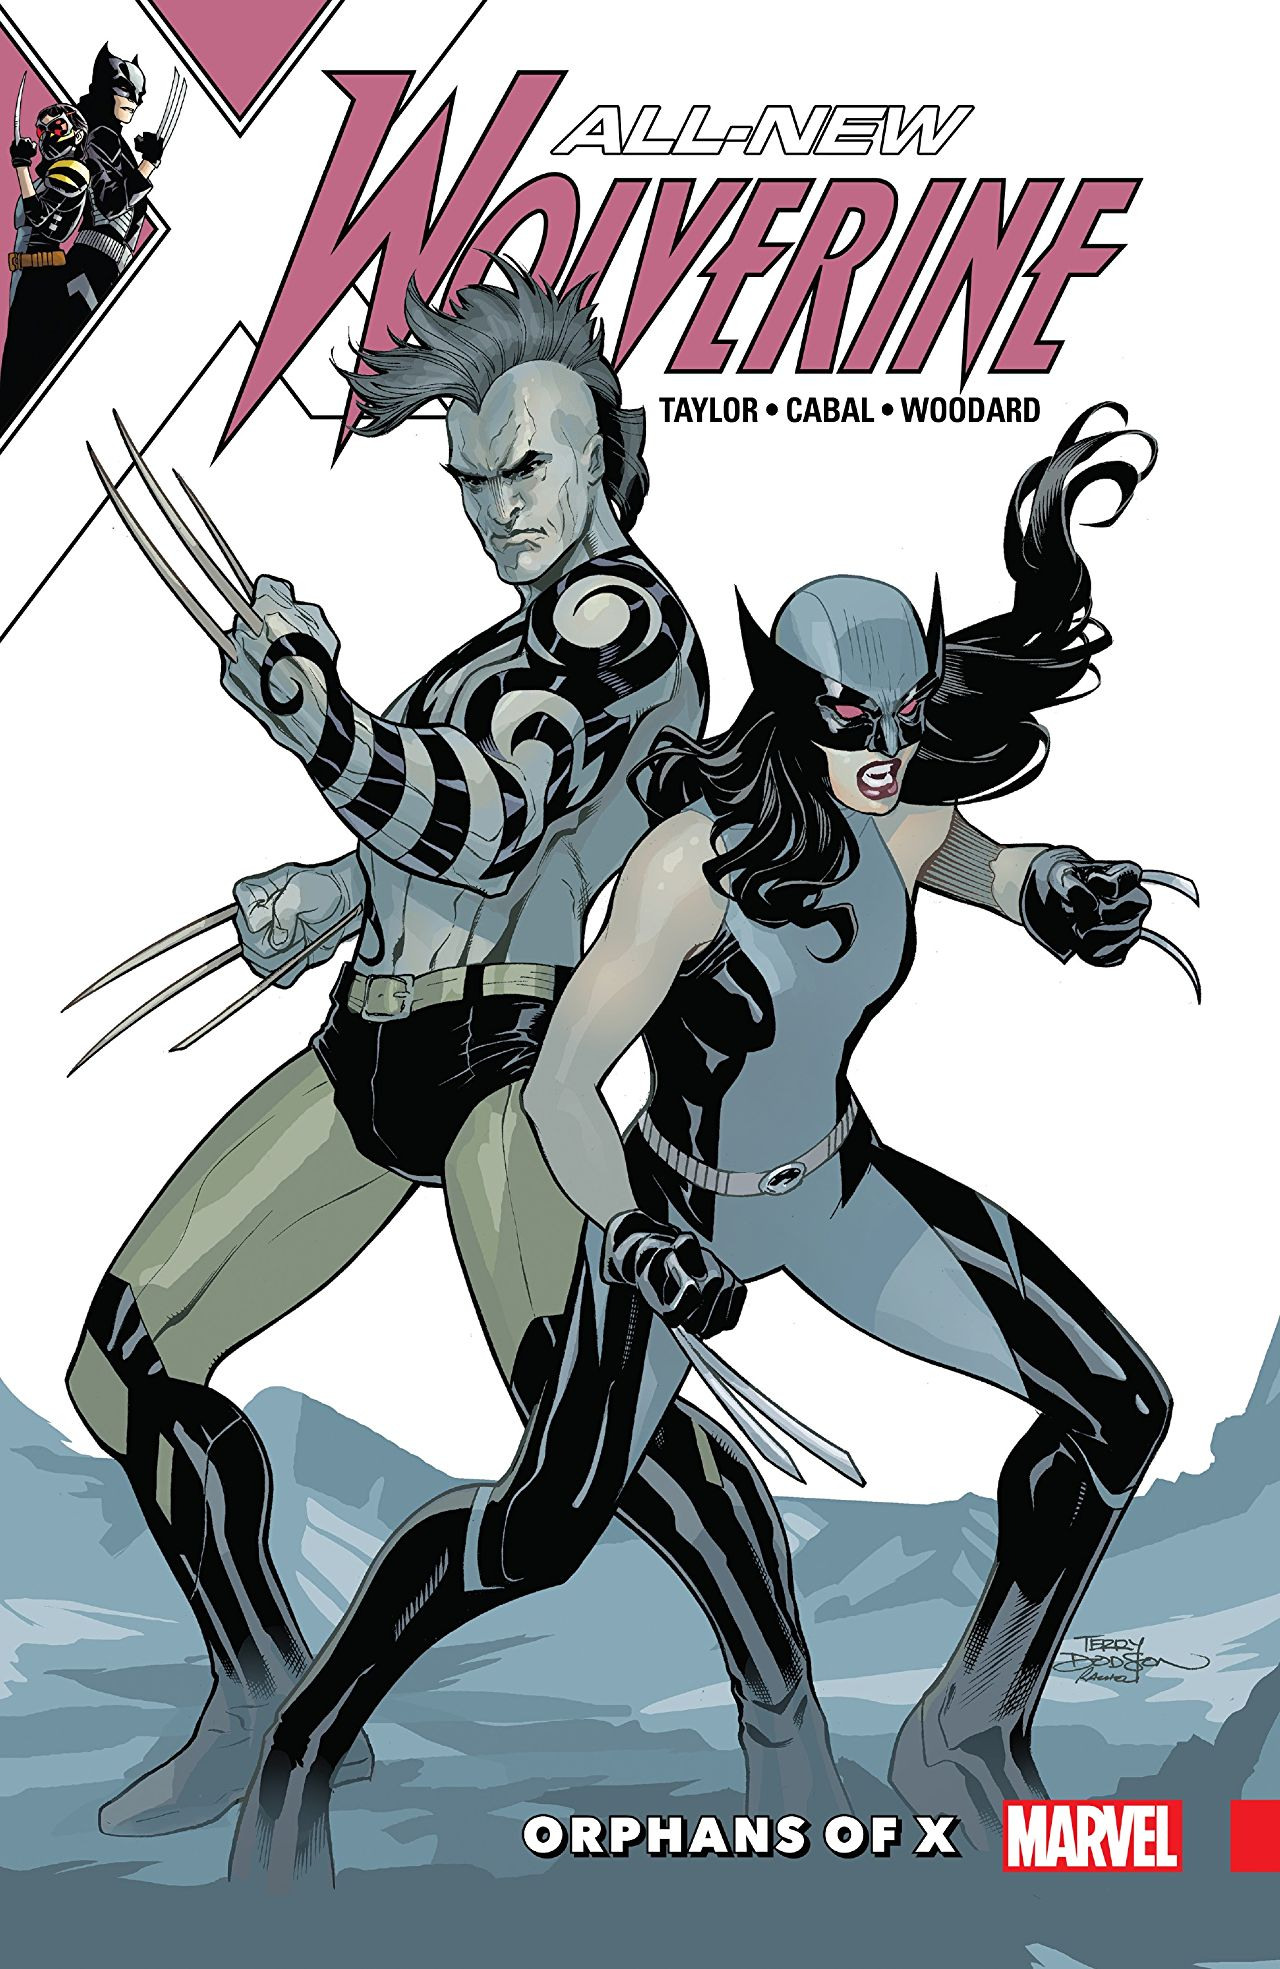 All-New Wolverine TPB Vol 1 5: Orphans of X